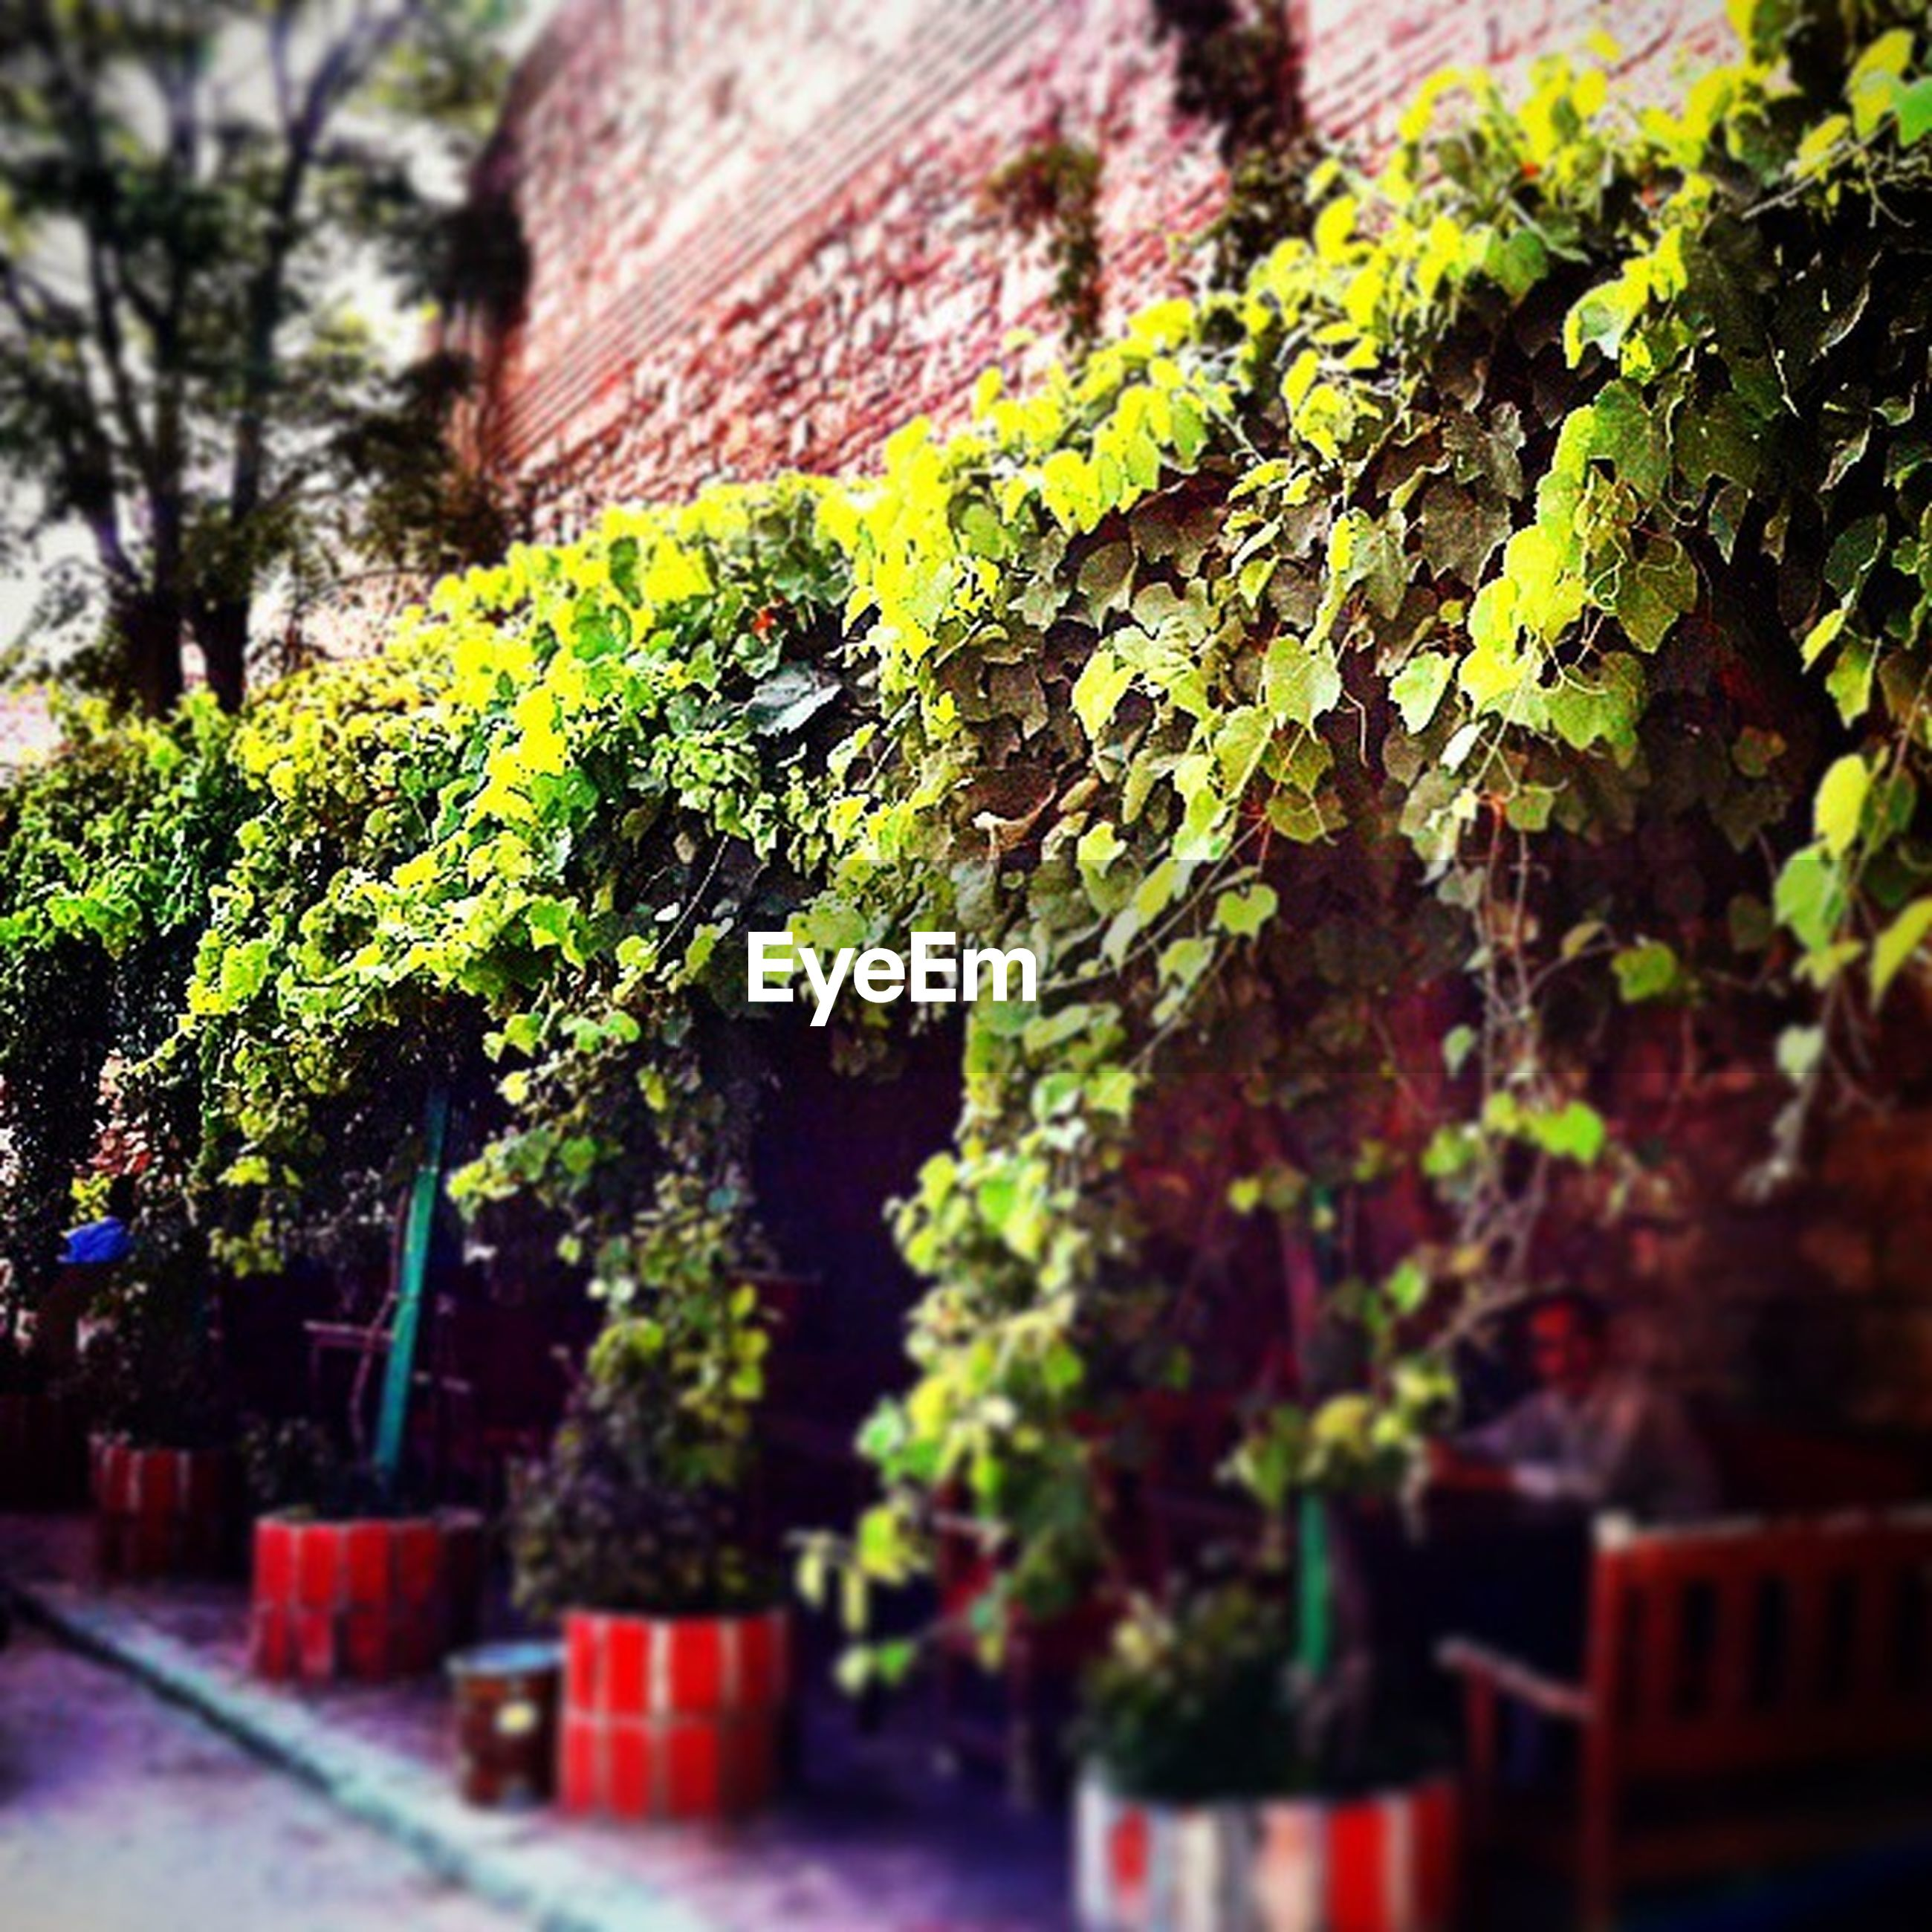 growth, tree, selective focus, plant, green color, leaf, built structure, building exterior, nature, house, focus on foreground, architecture, close-up, day, outdoors, ivy, no people, growing, low angle view, beauty in nature